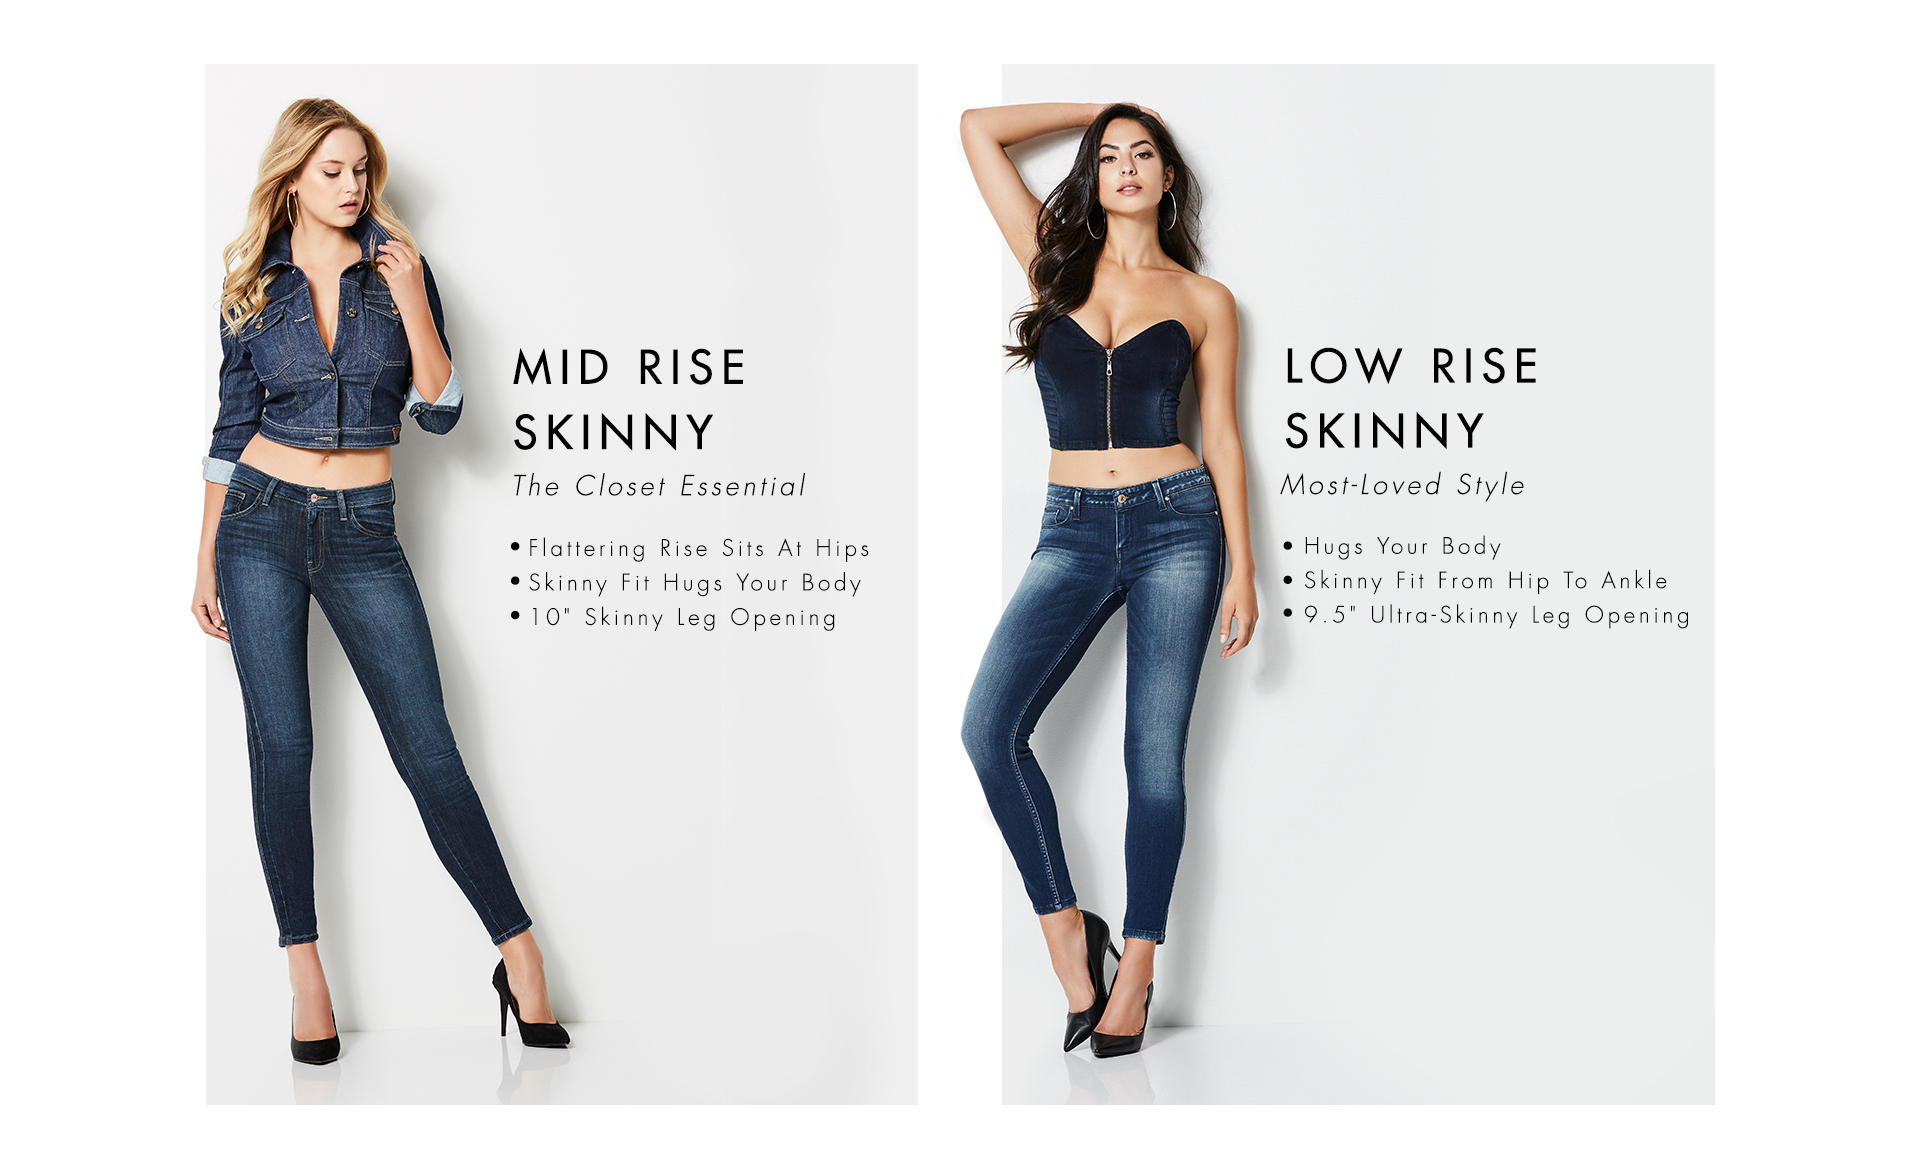 Mid Rise Skinny and Low Rise Skinny